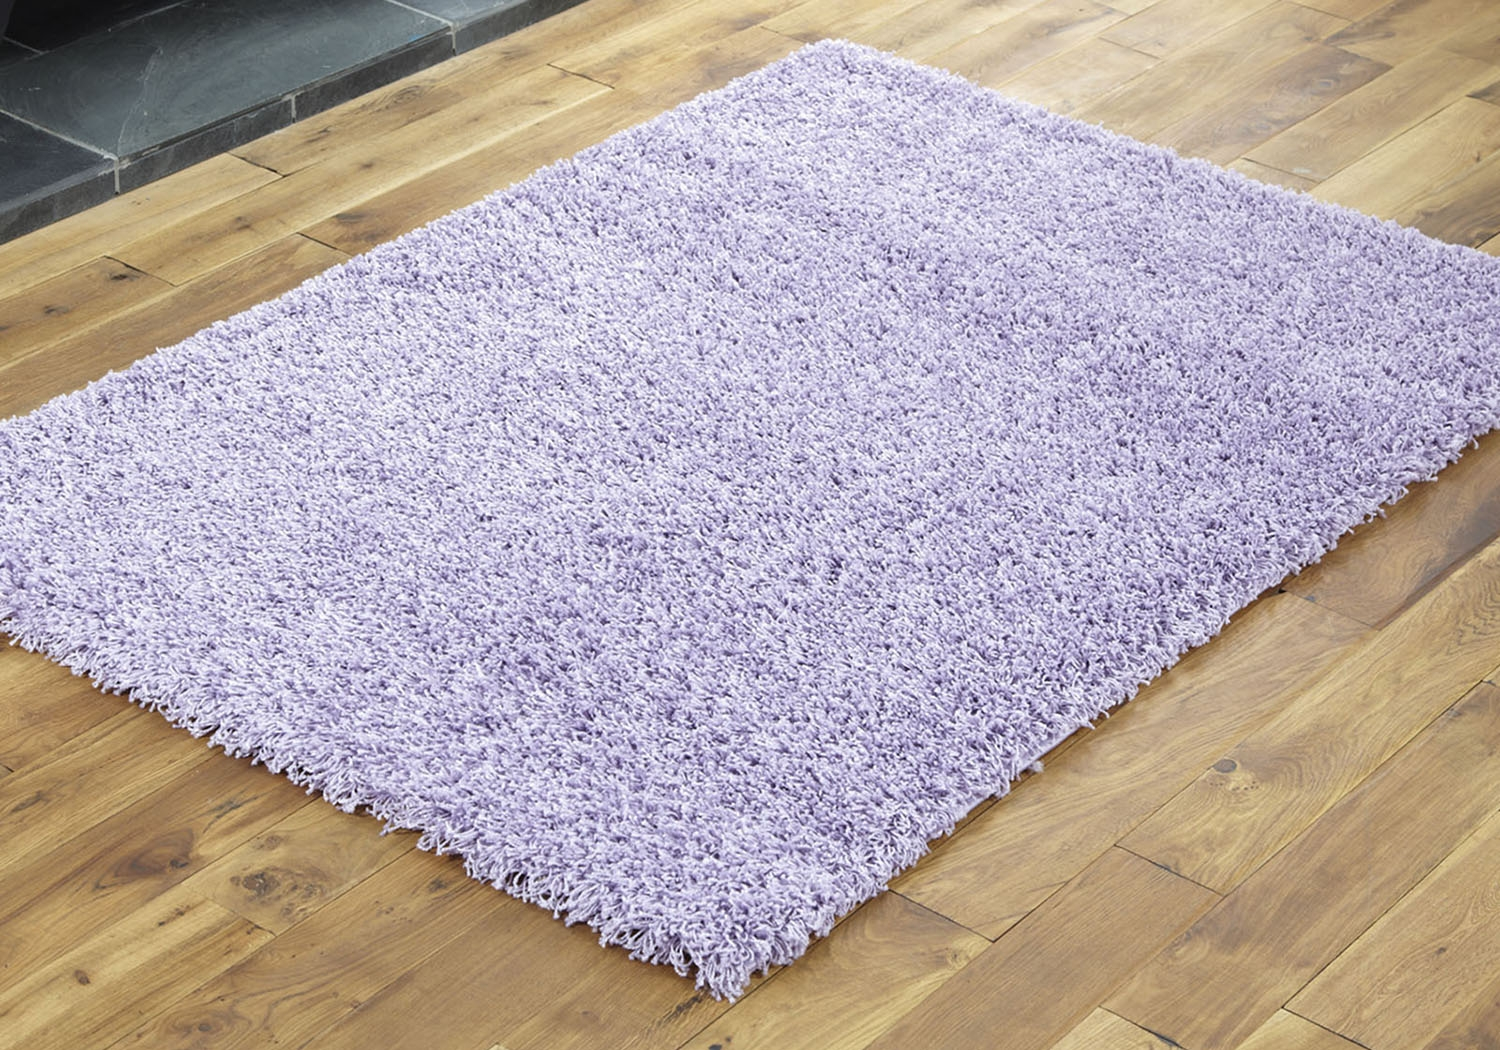 Large Medium Small 5cm Pile Plain Soft Luxurious Lilac Colour With Regard To Lilac Rugs (Image 5 of 15)